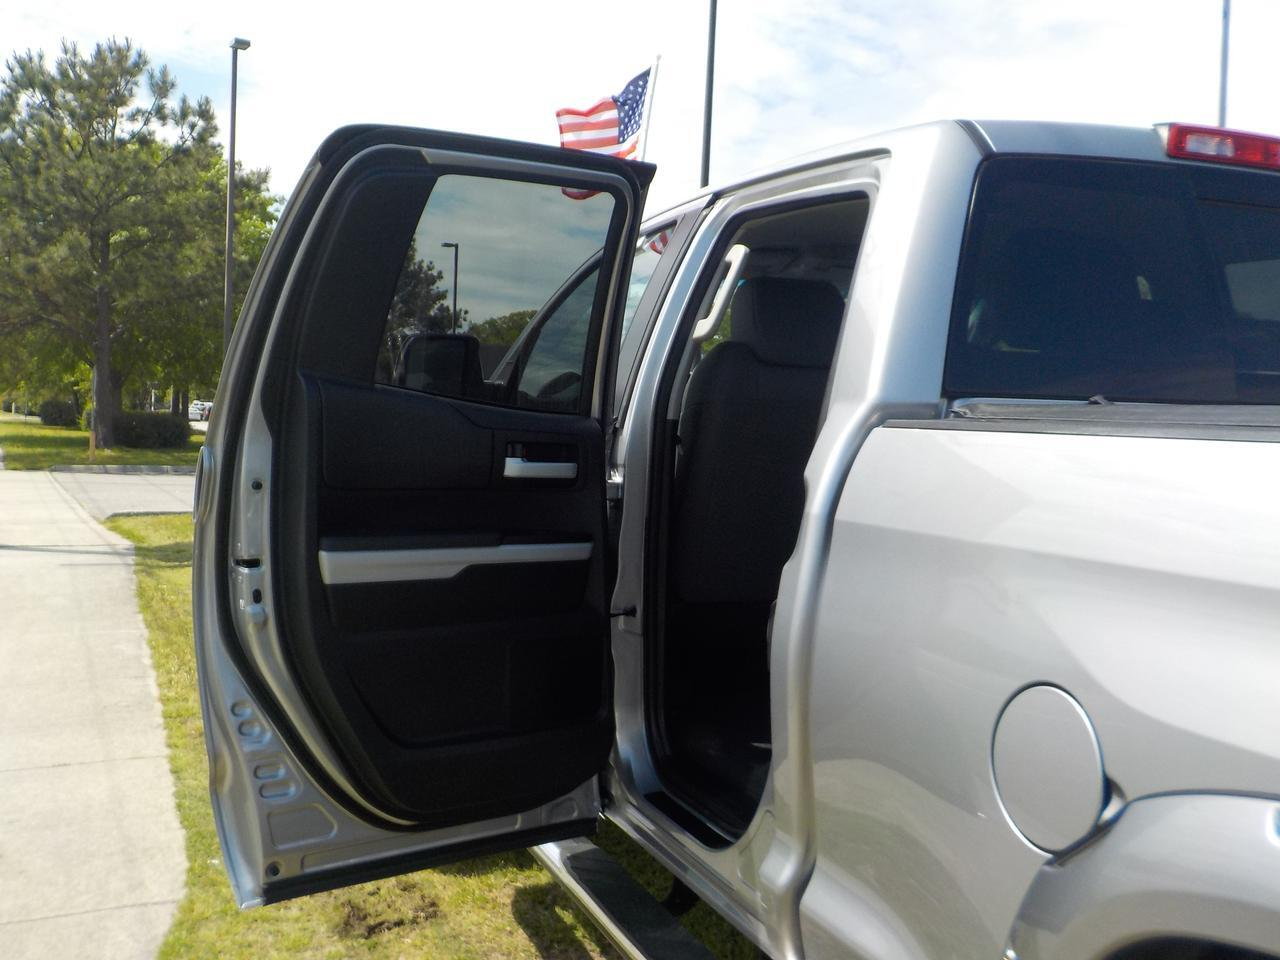 2014 TOYOTA TUNDRA SR5 DOUBLE CAB 4X4, WARRANTY, ULTRA RIMS, BRUSH GUARD, RUNNING BOARDS, BLUETOOTH, TOW, AUX PORT! Virginia Beach VA